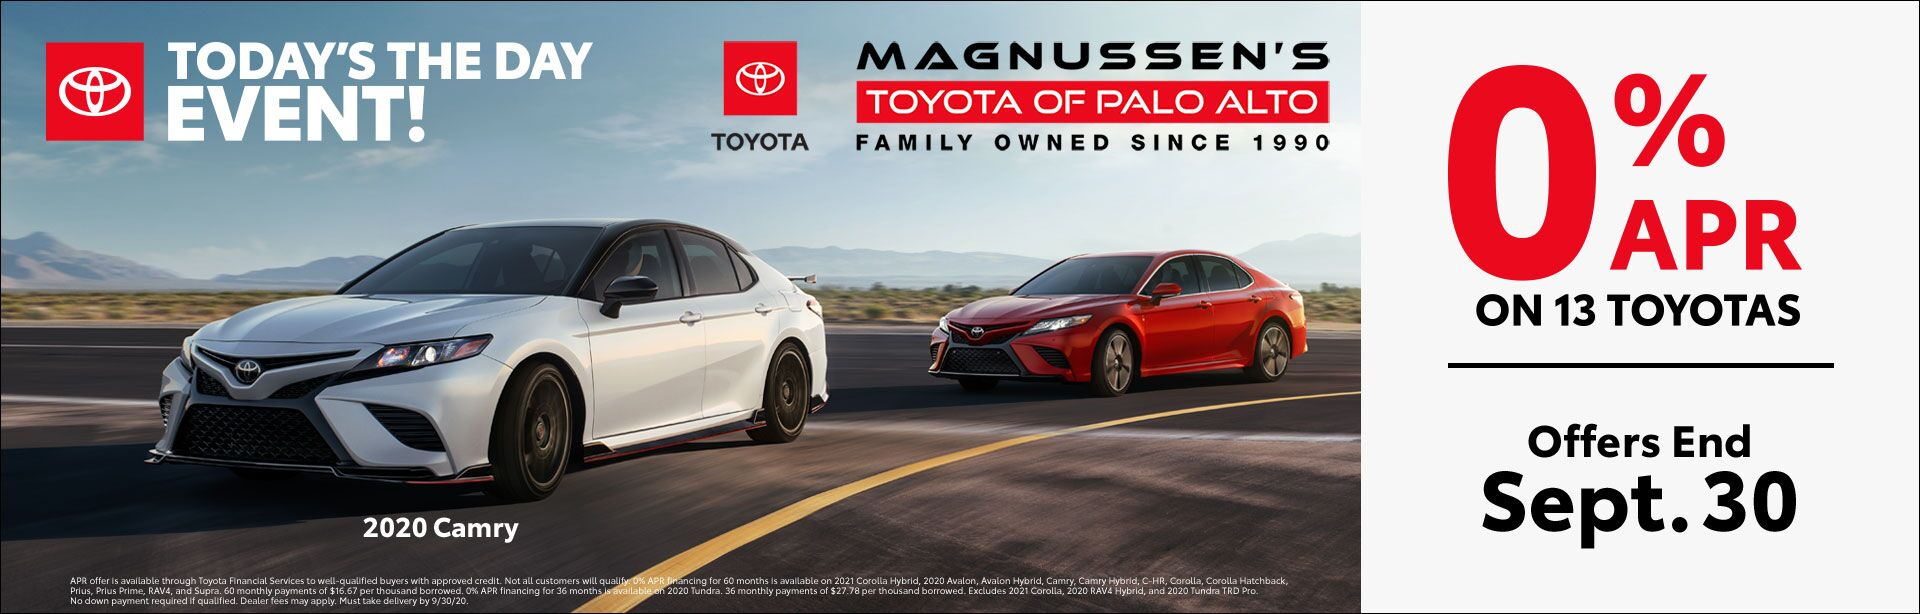 Toyota 0% APR Financing Deals